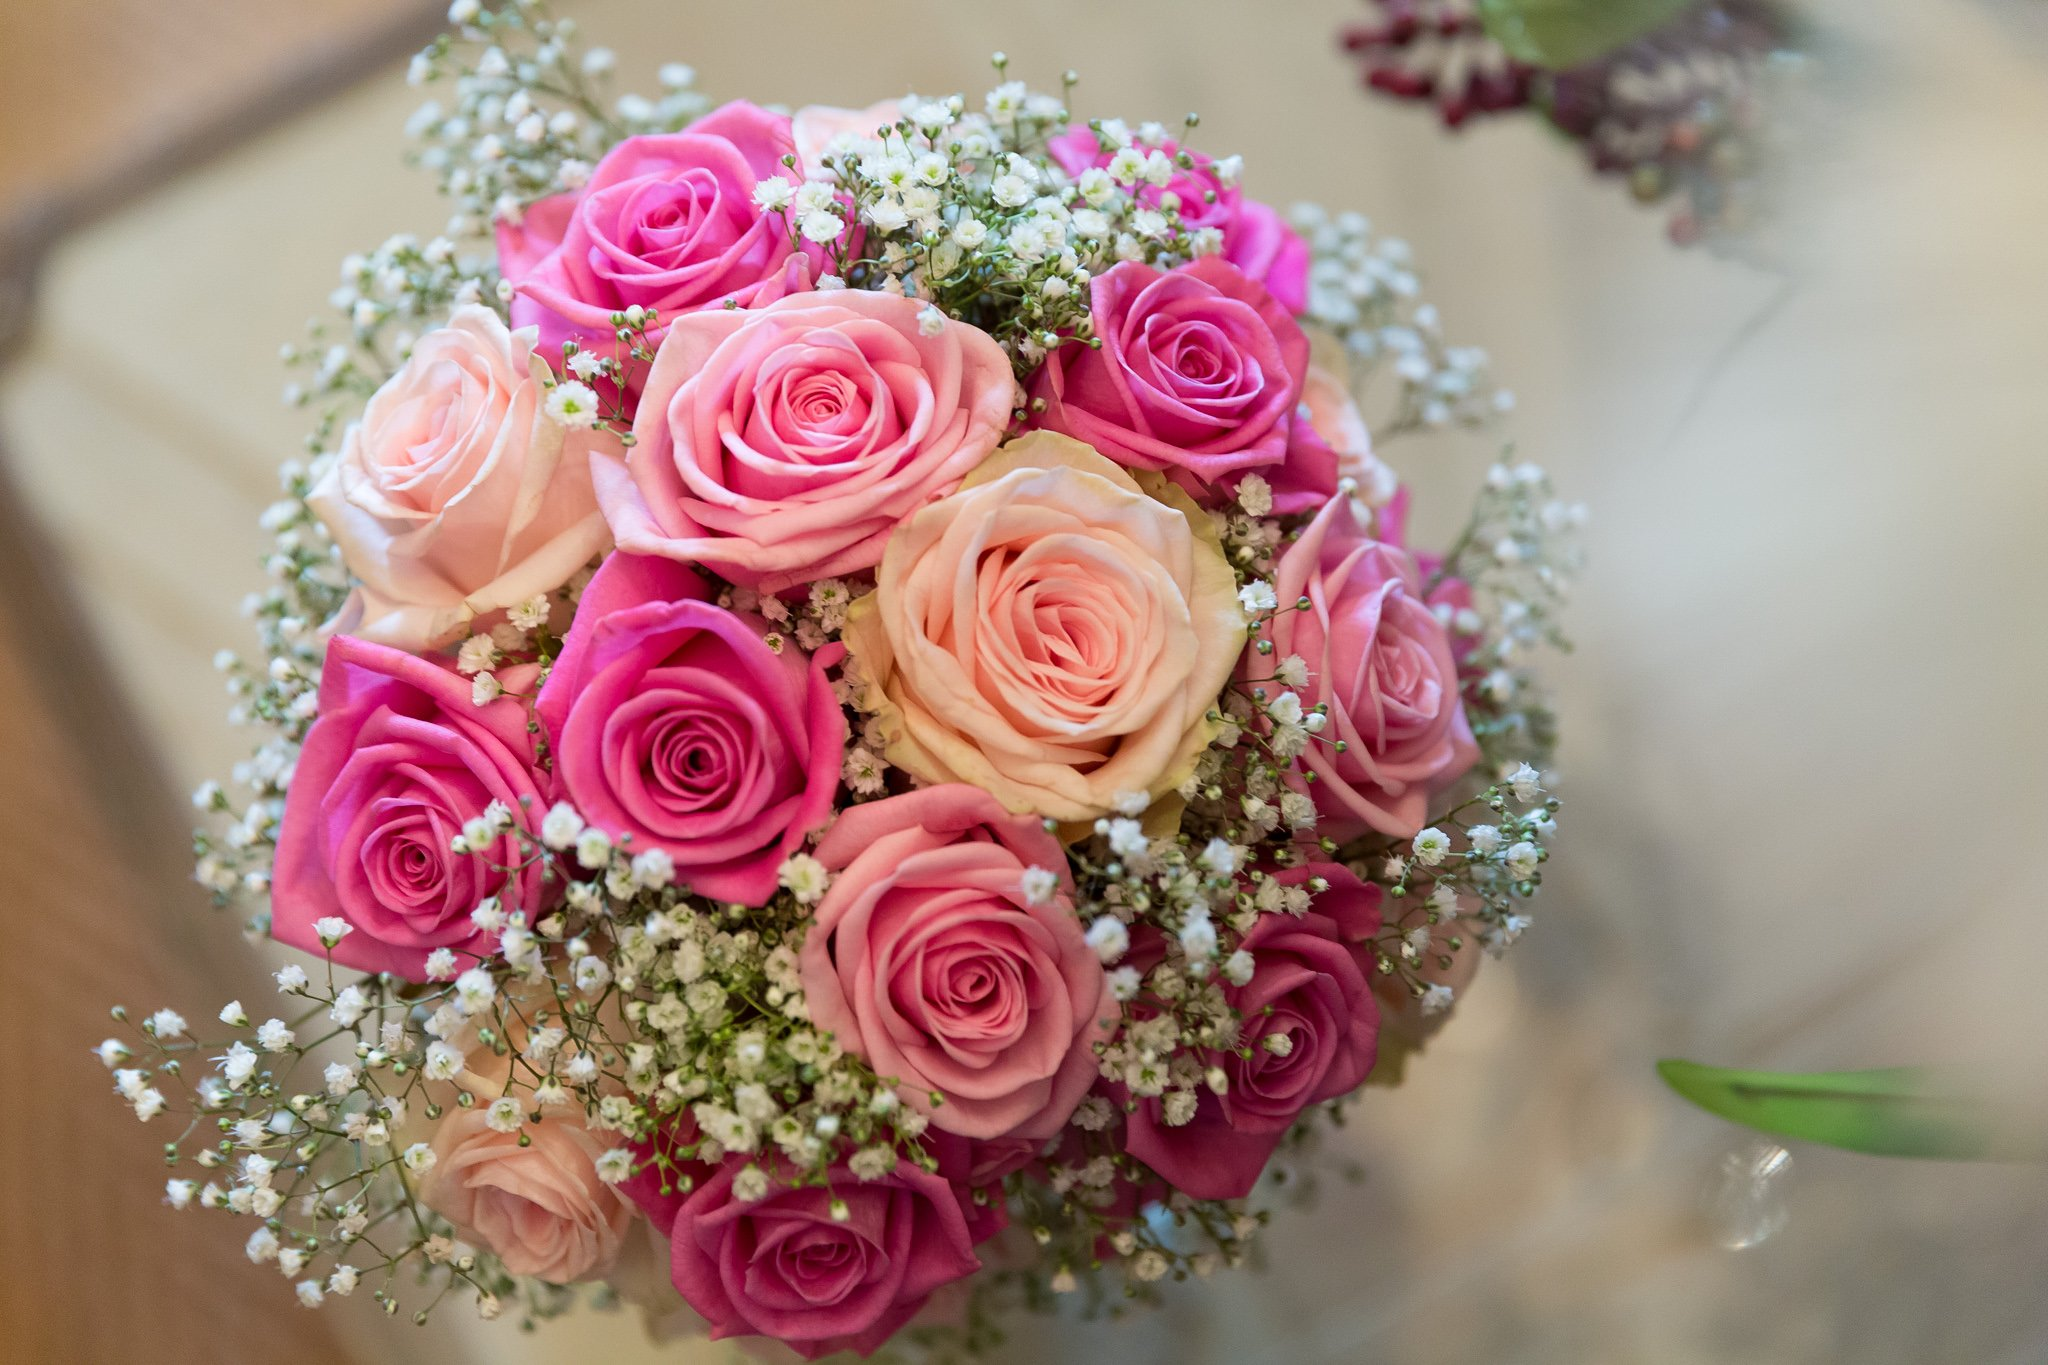 Bride's bouquet with light pink roses